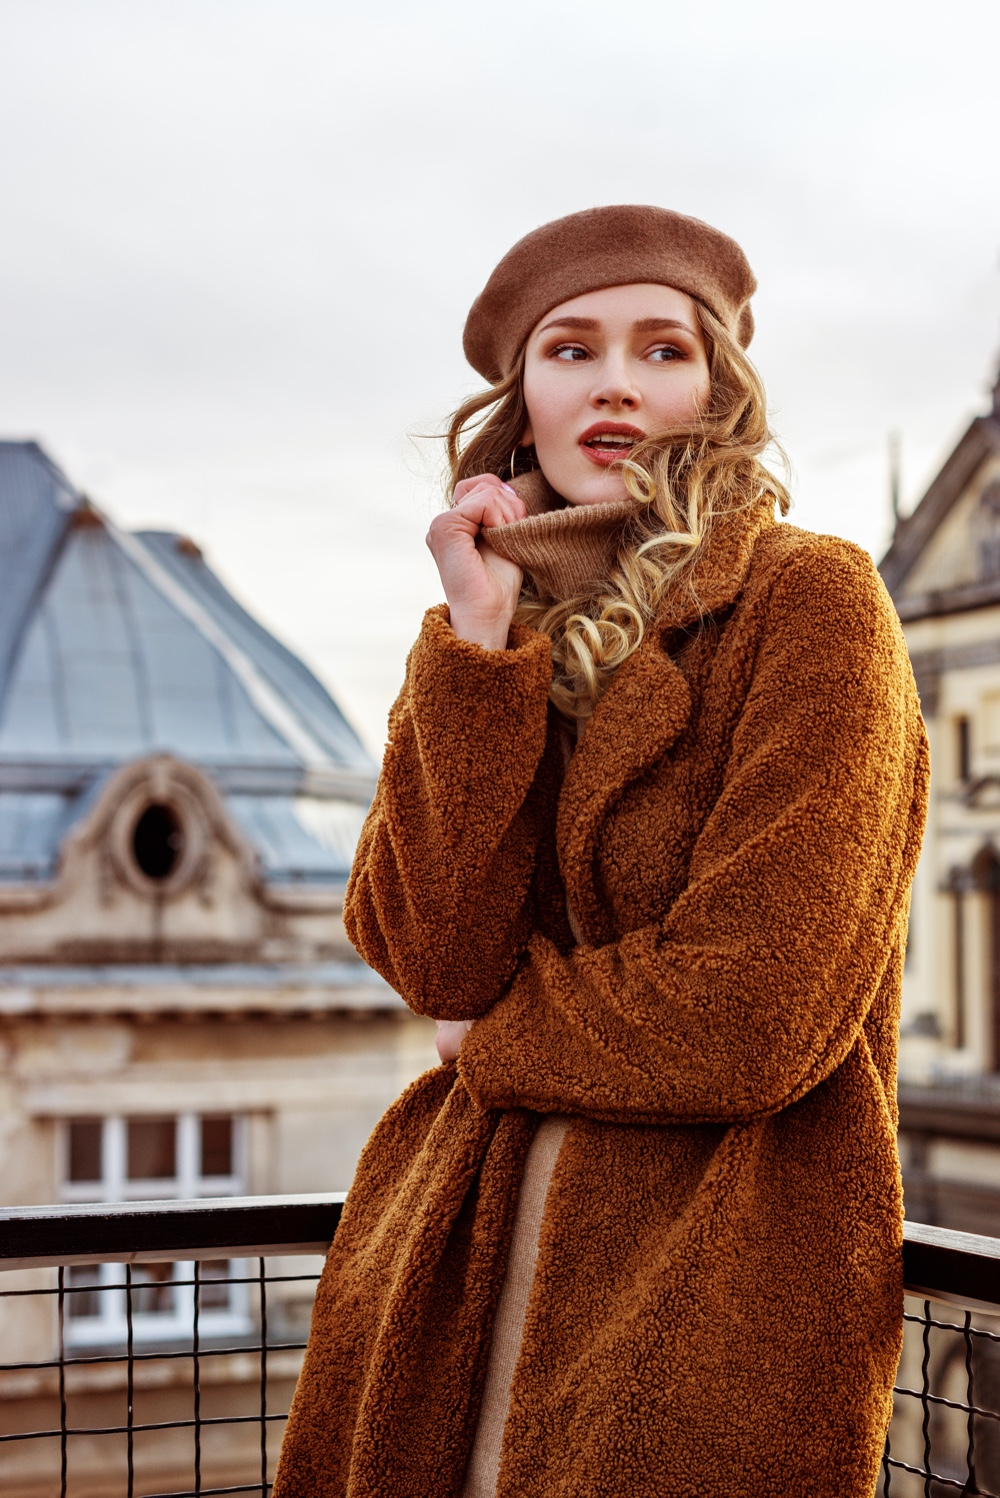 Women's Fall/Winter Coats 2021   Our Top Trends And Styles